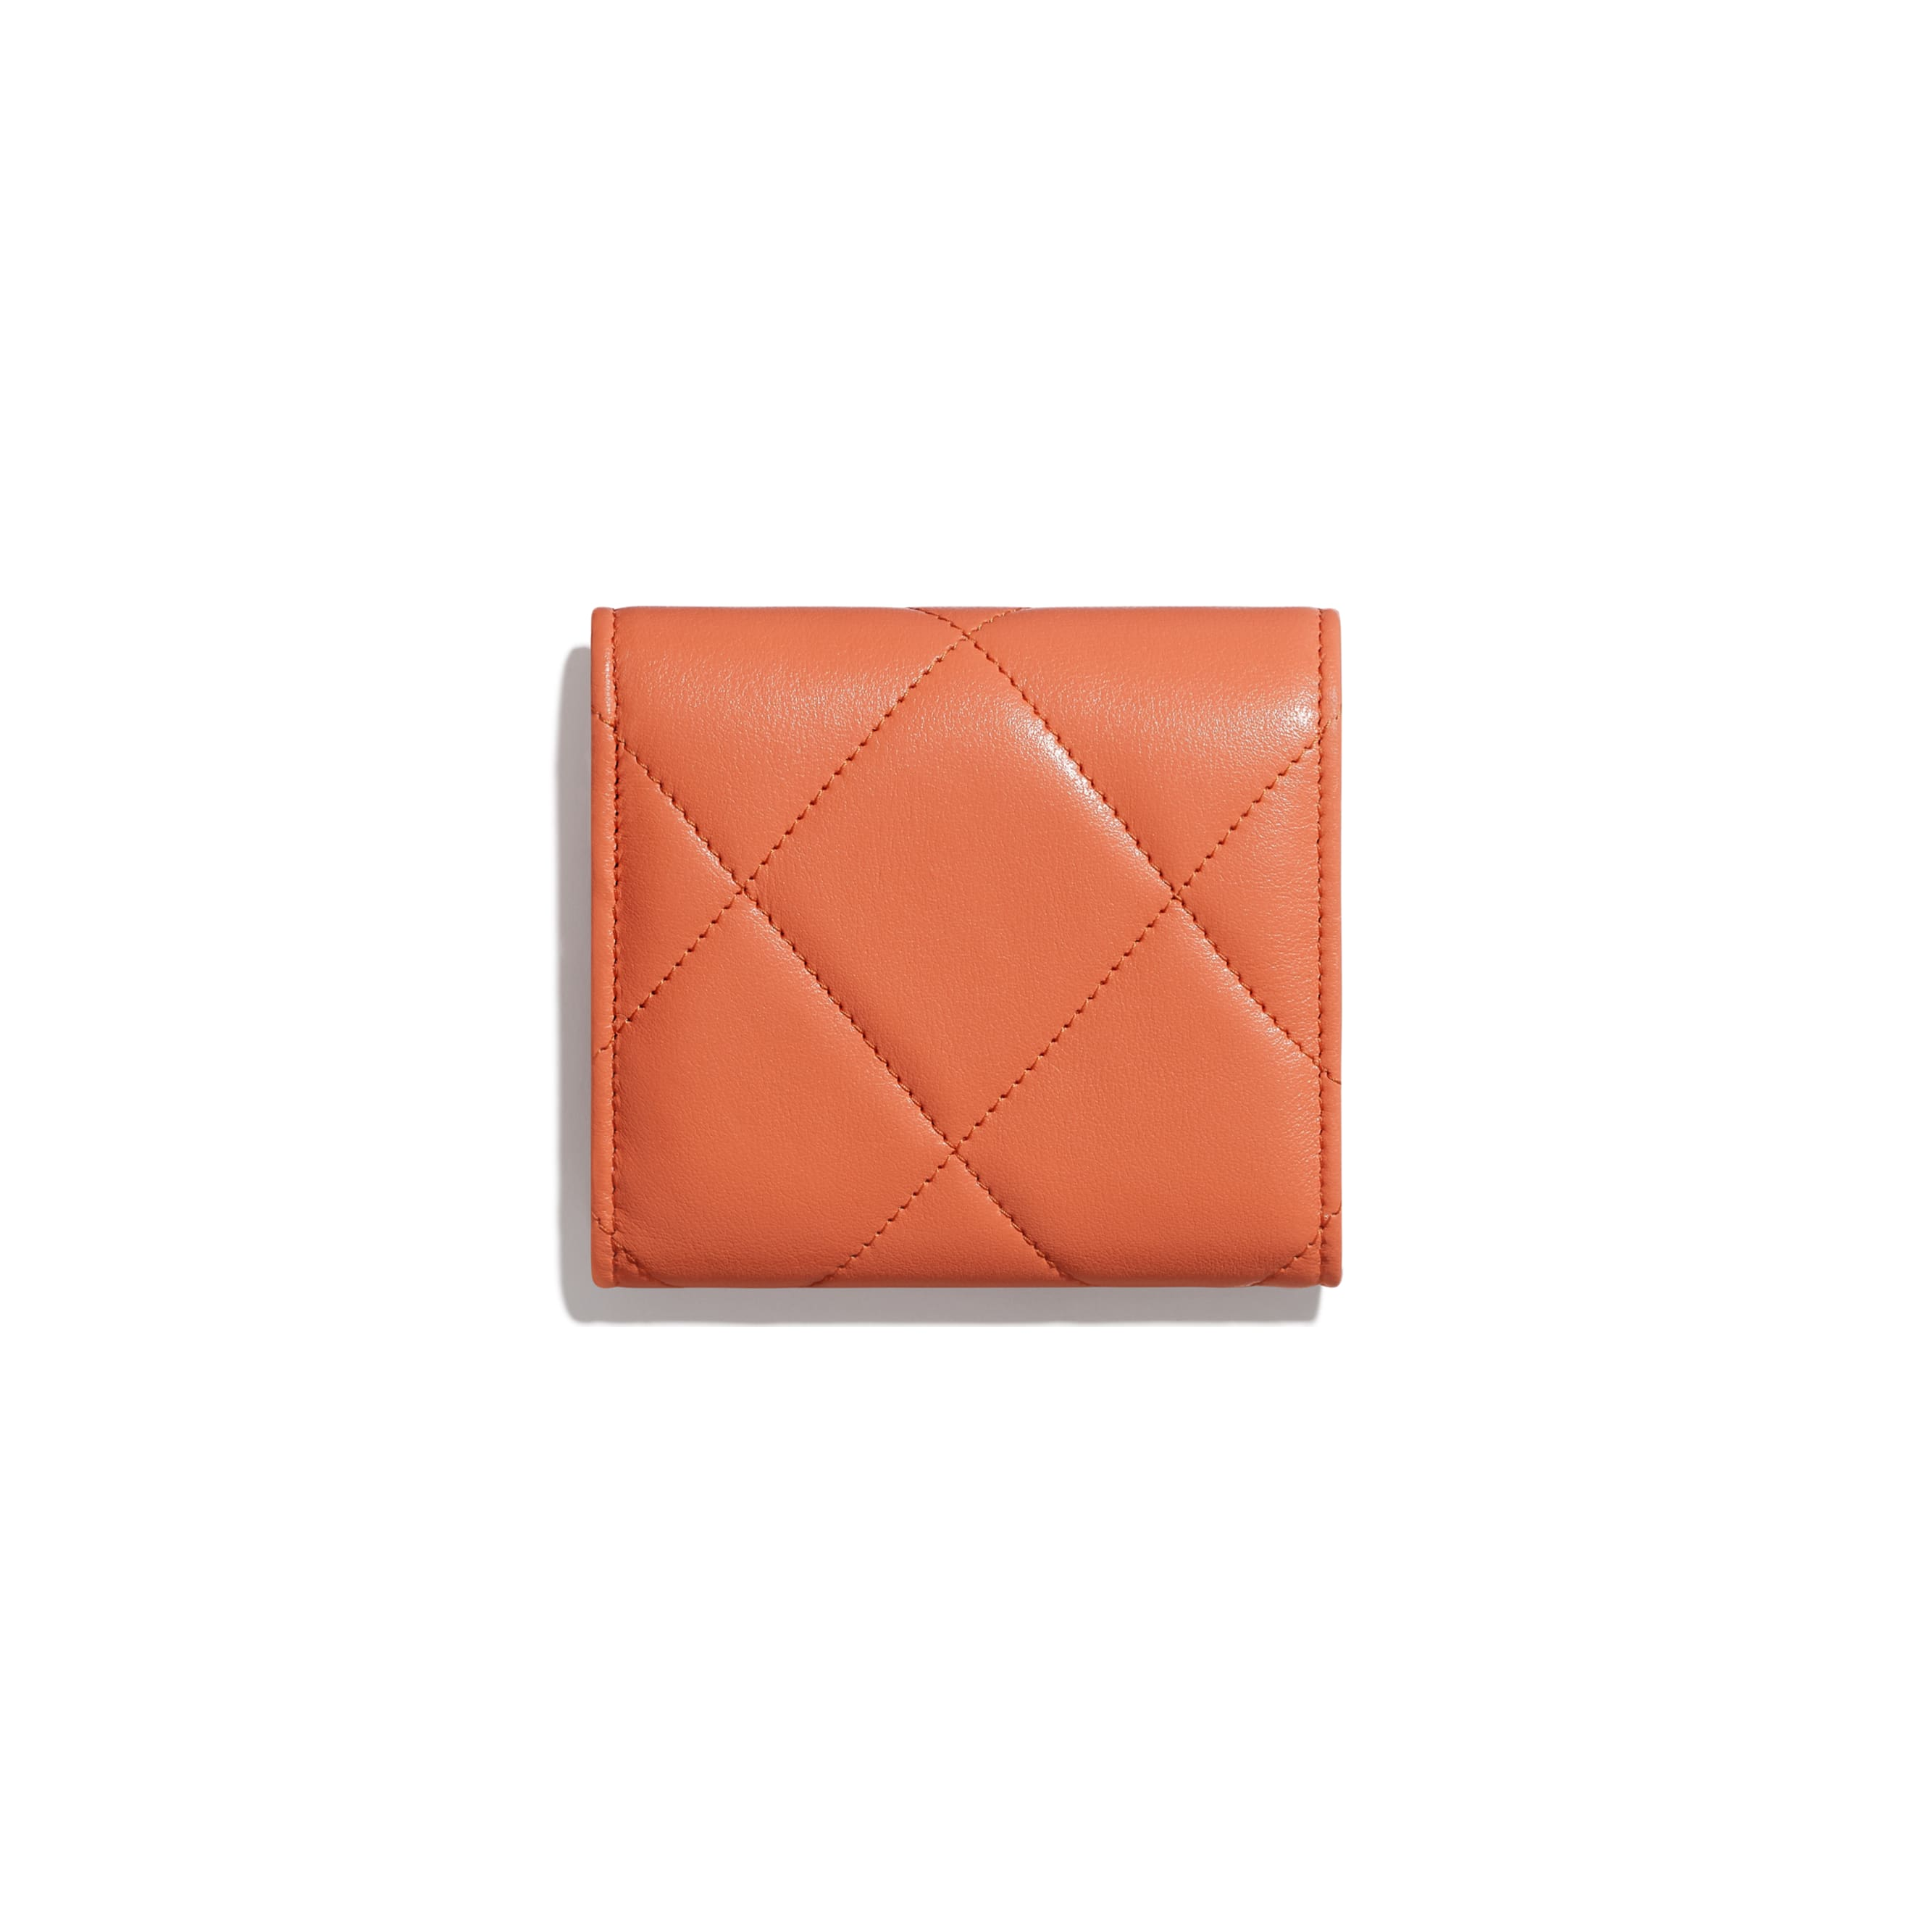 CHANEL 19 Small Flap Wallet - Orange - Lambskin, Gold-Tone, Silver-Tone & Ruthenium-Finish Metal - CHANEL - Alternative view - see standard sized version